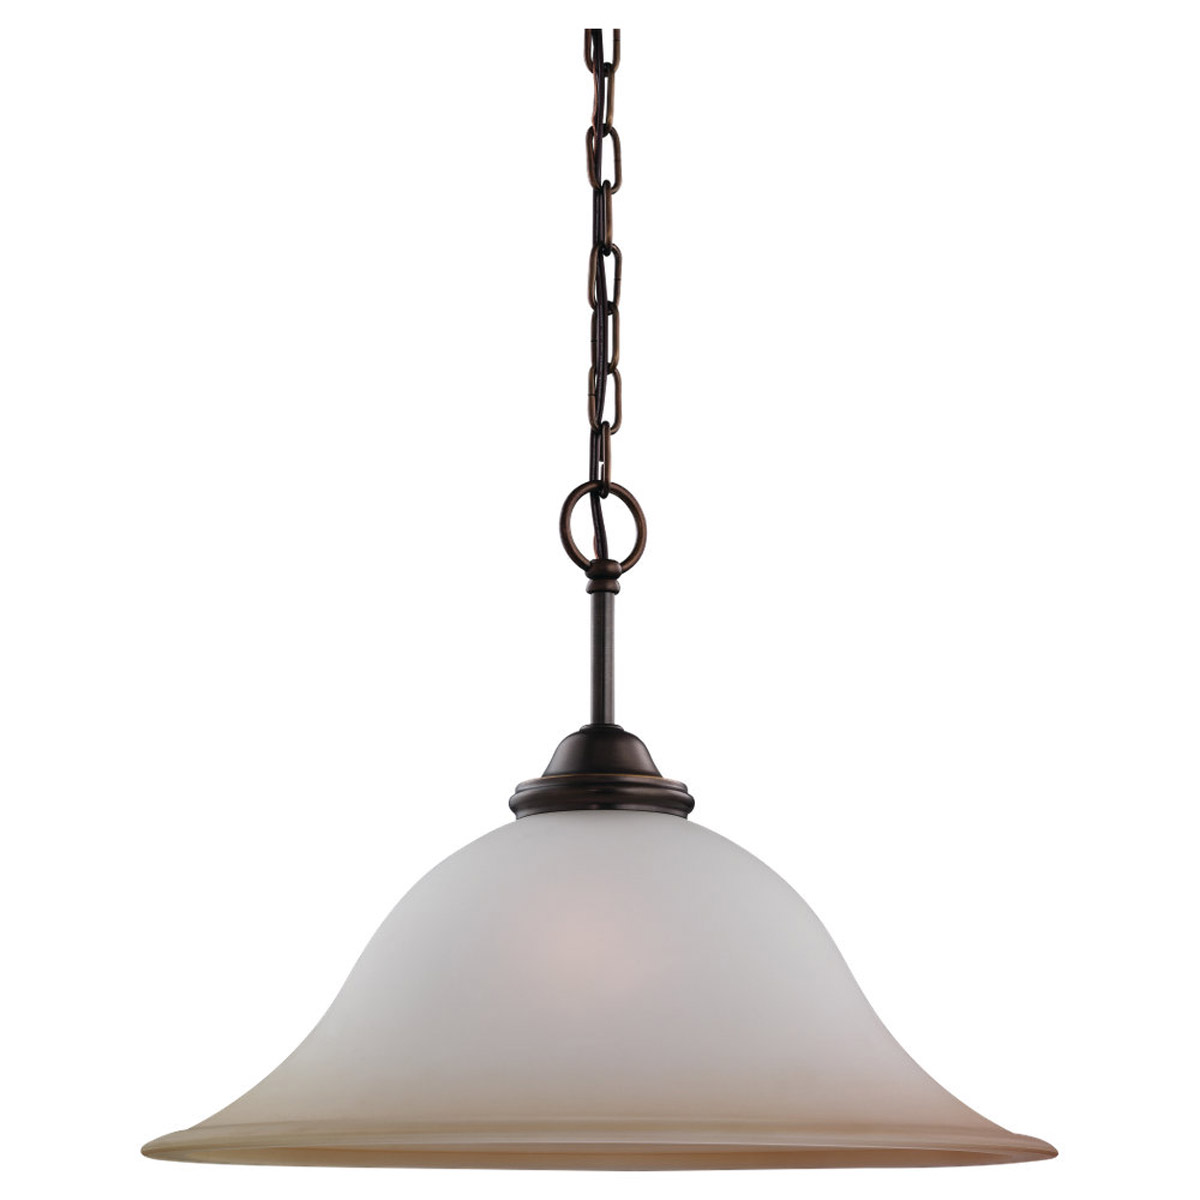 Sea Gull 65360-829 Rialto 1 Light 18 inch Russet Bronze Pendant Ceiling Light in Ginger Glass photo